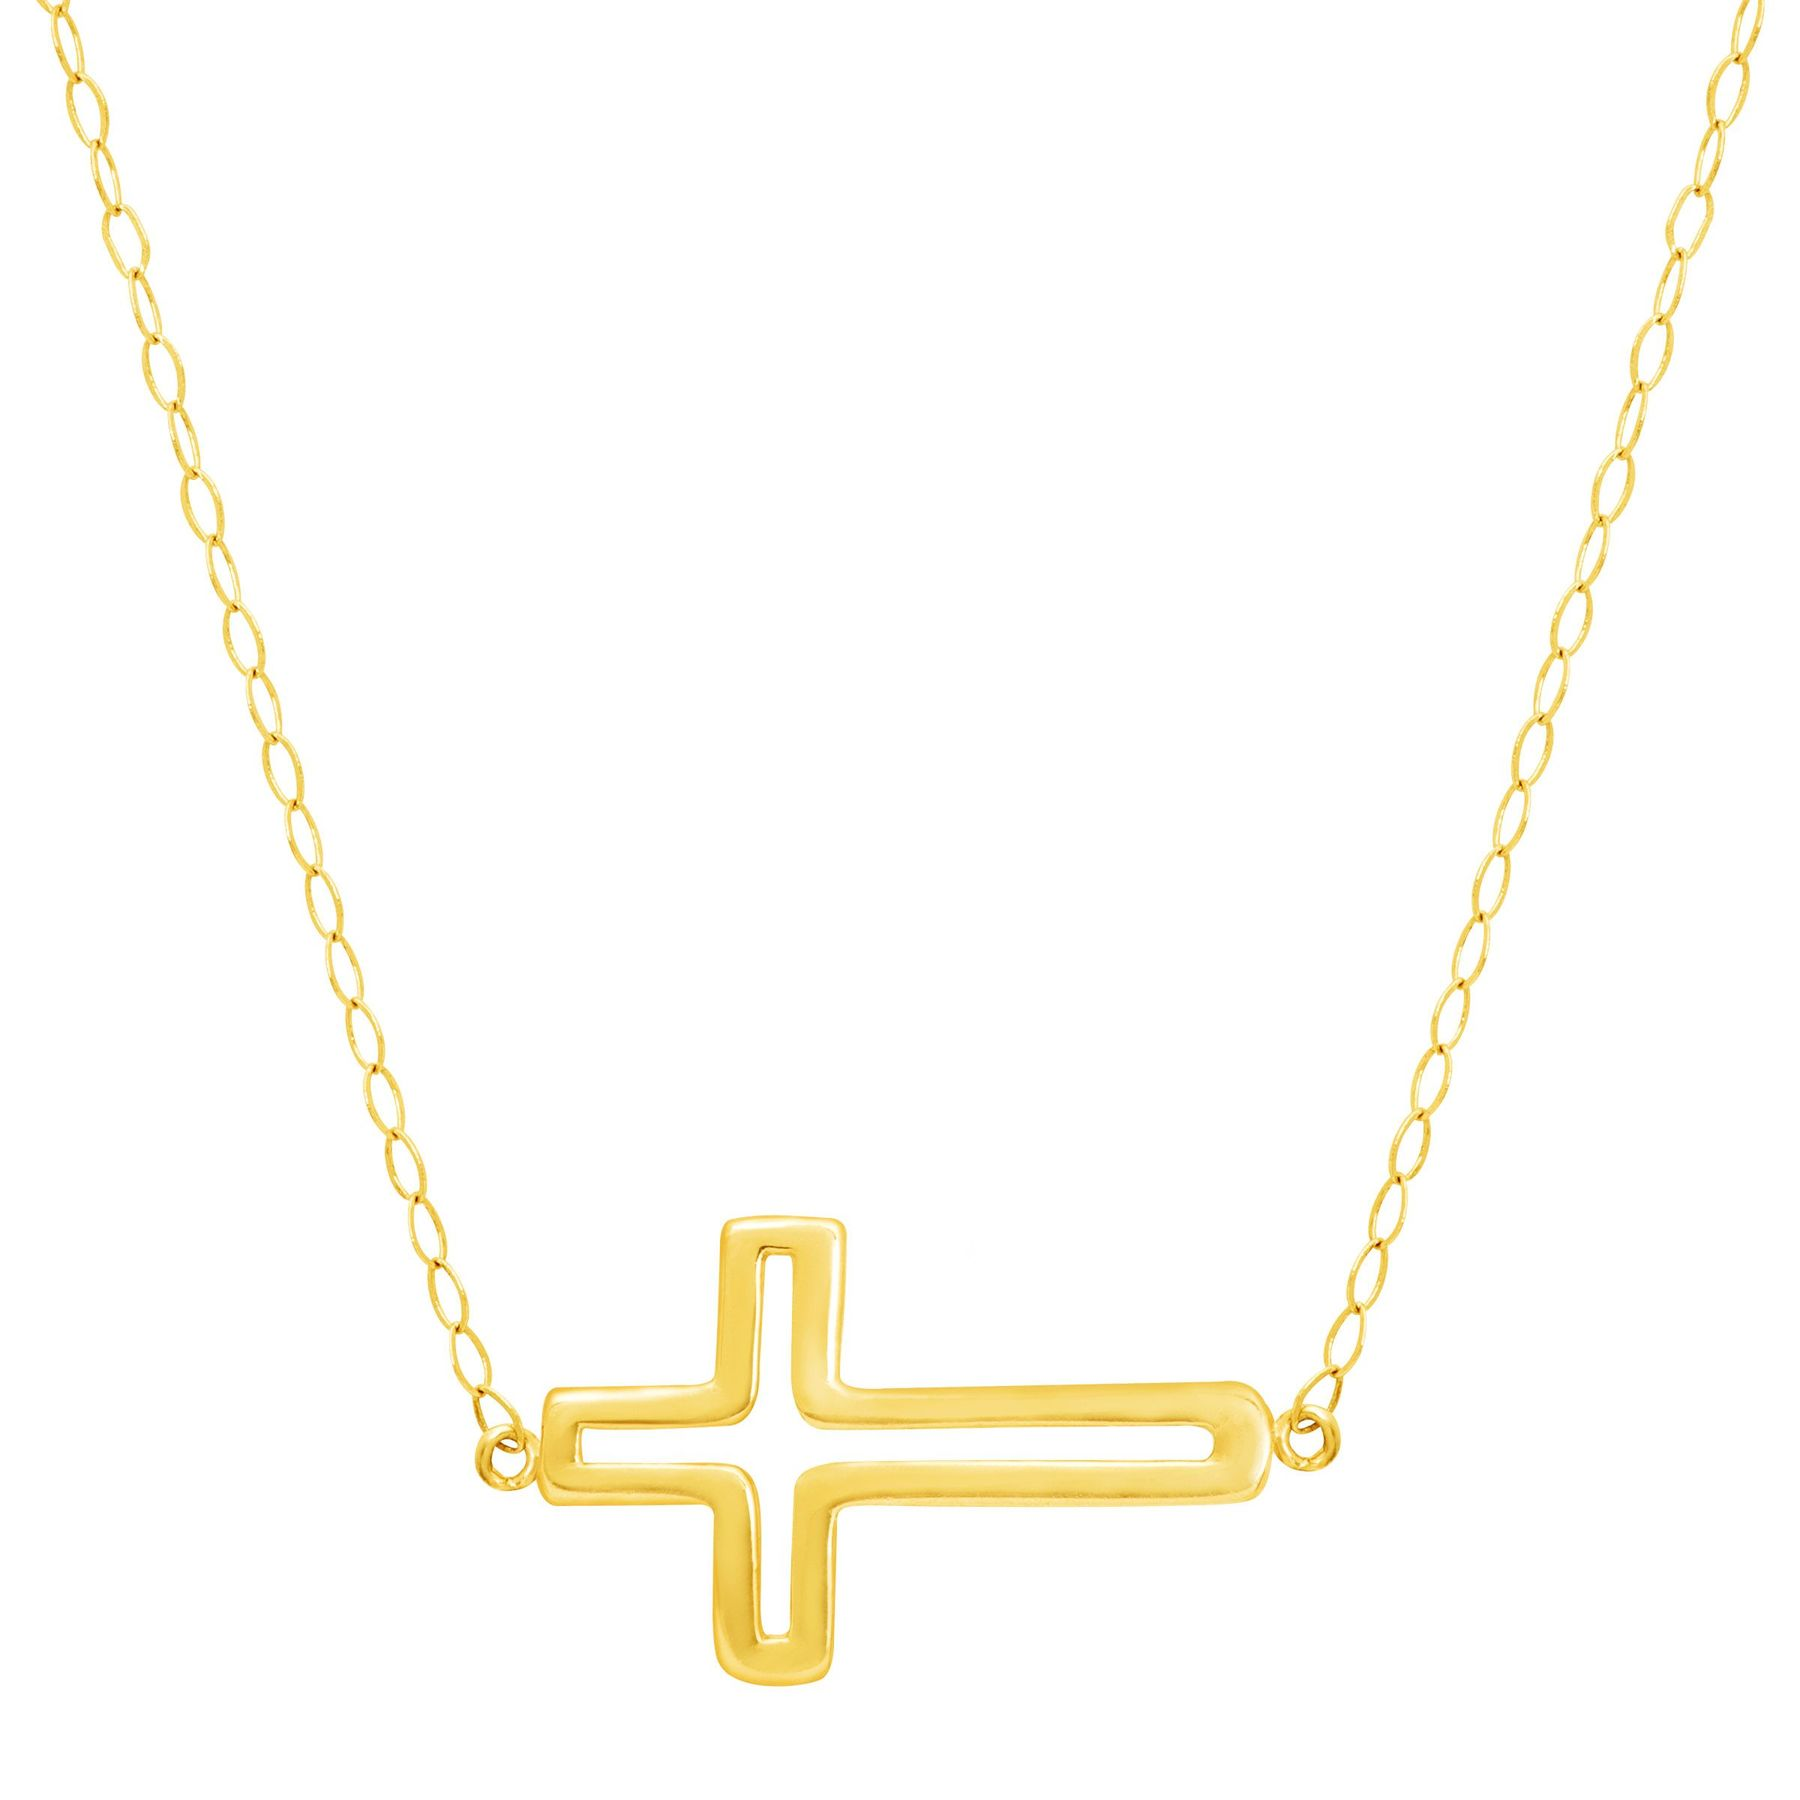 Eternity Gold Silhouette Cross Necklace In 10k Gold Silhouette